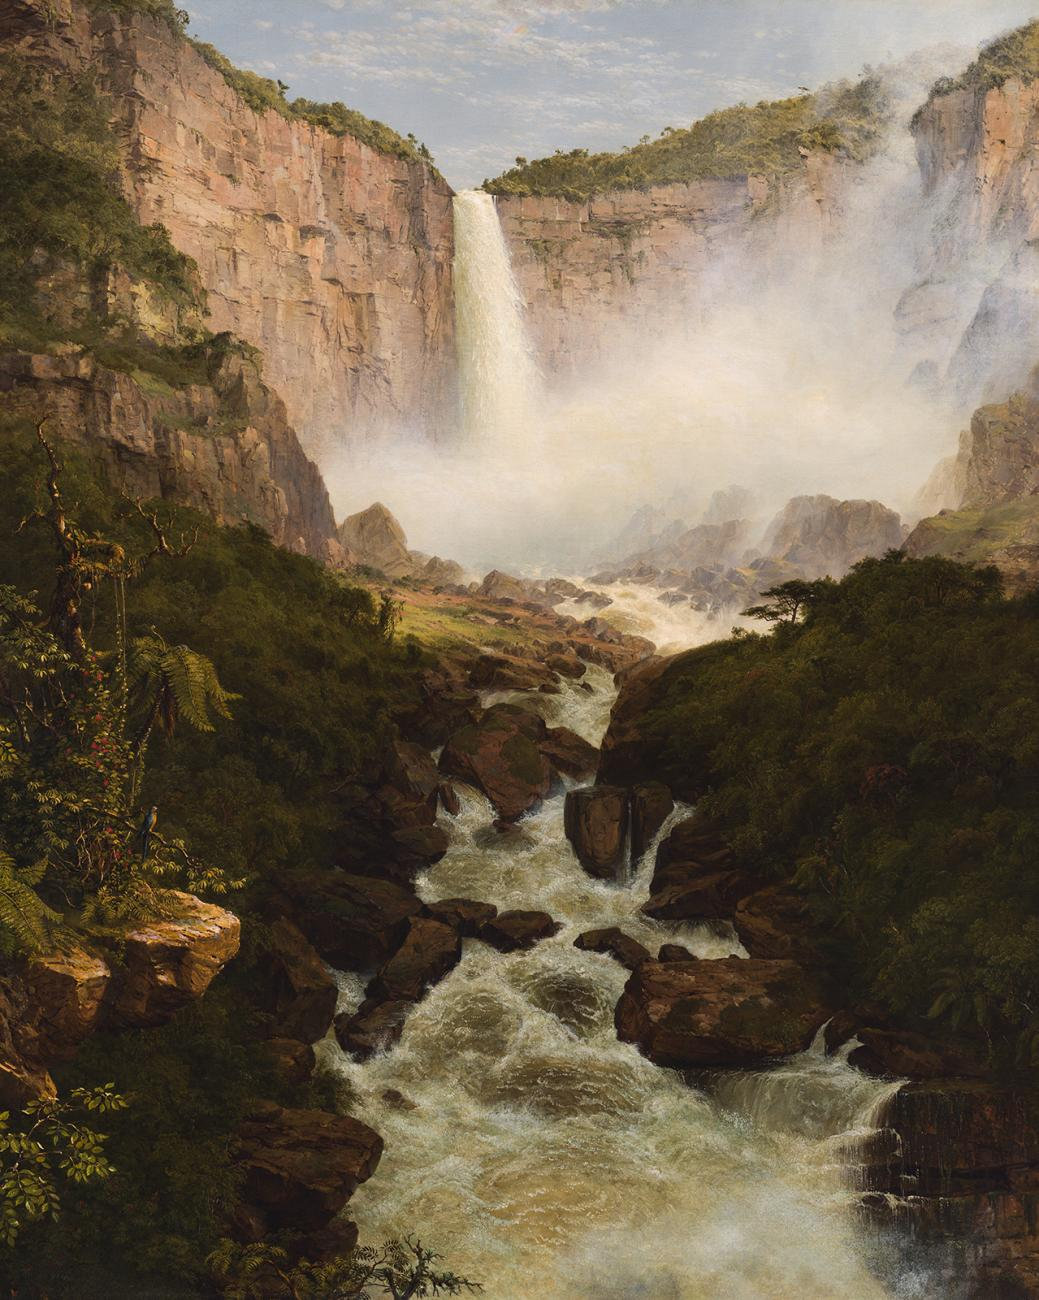 A painting of a waterfall